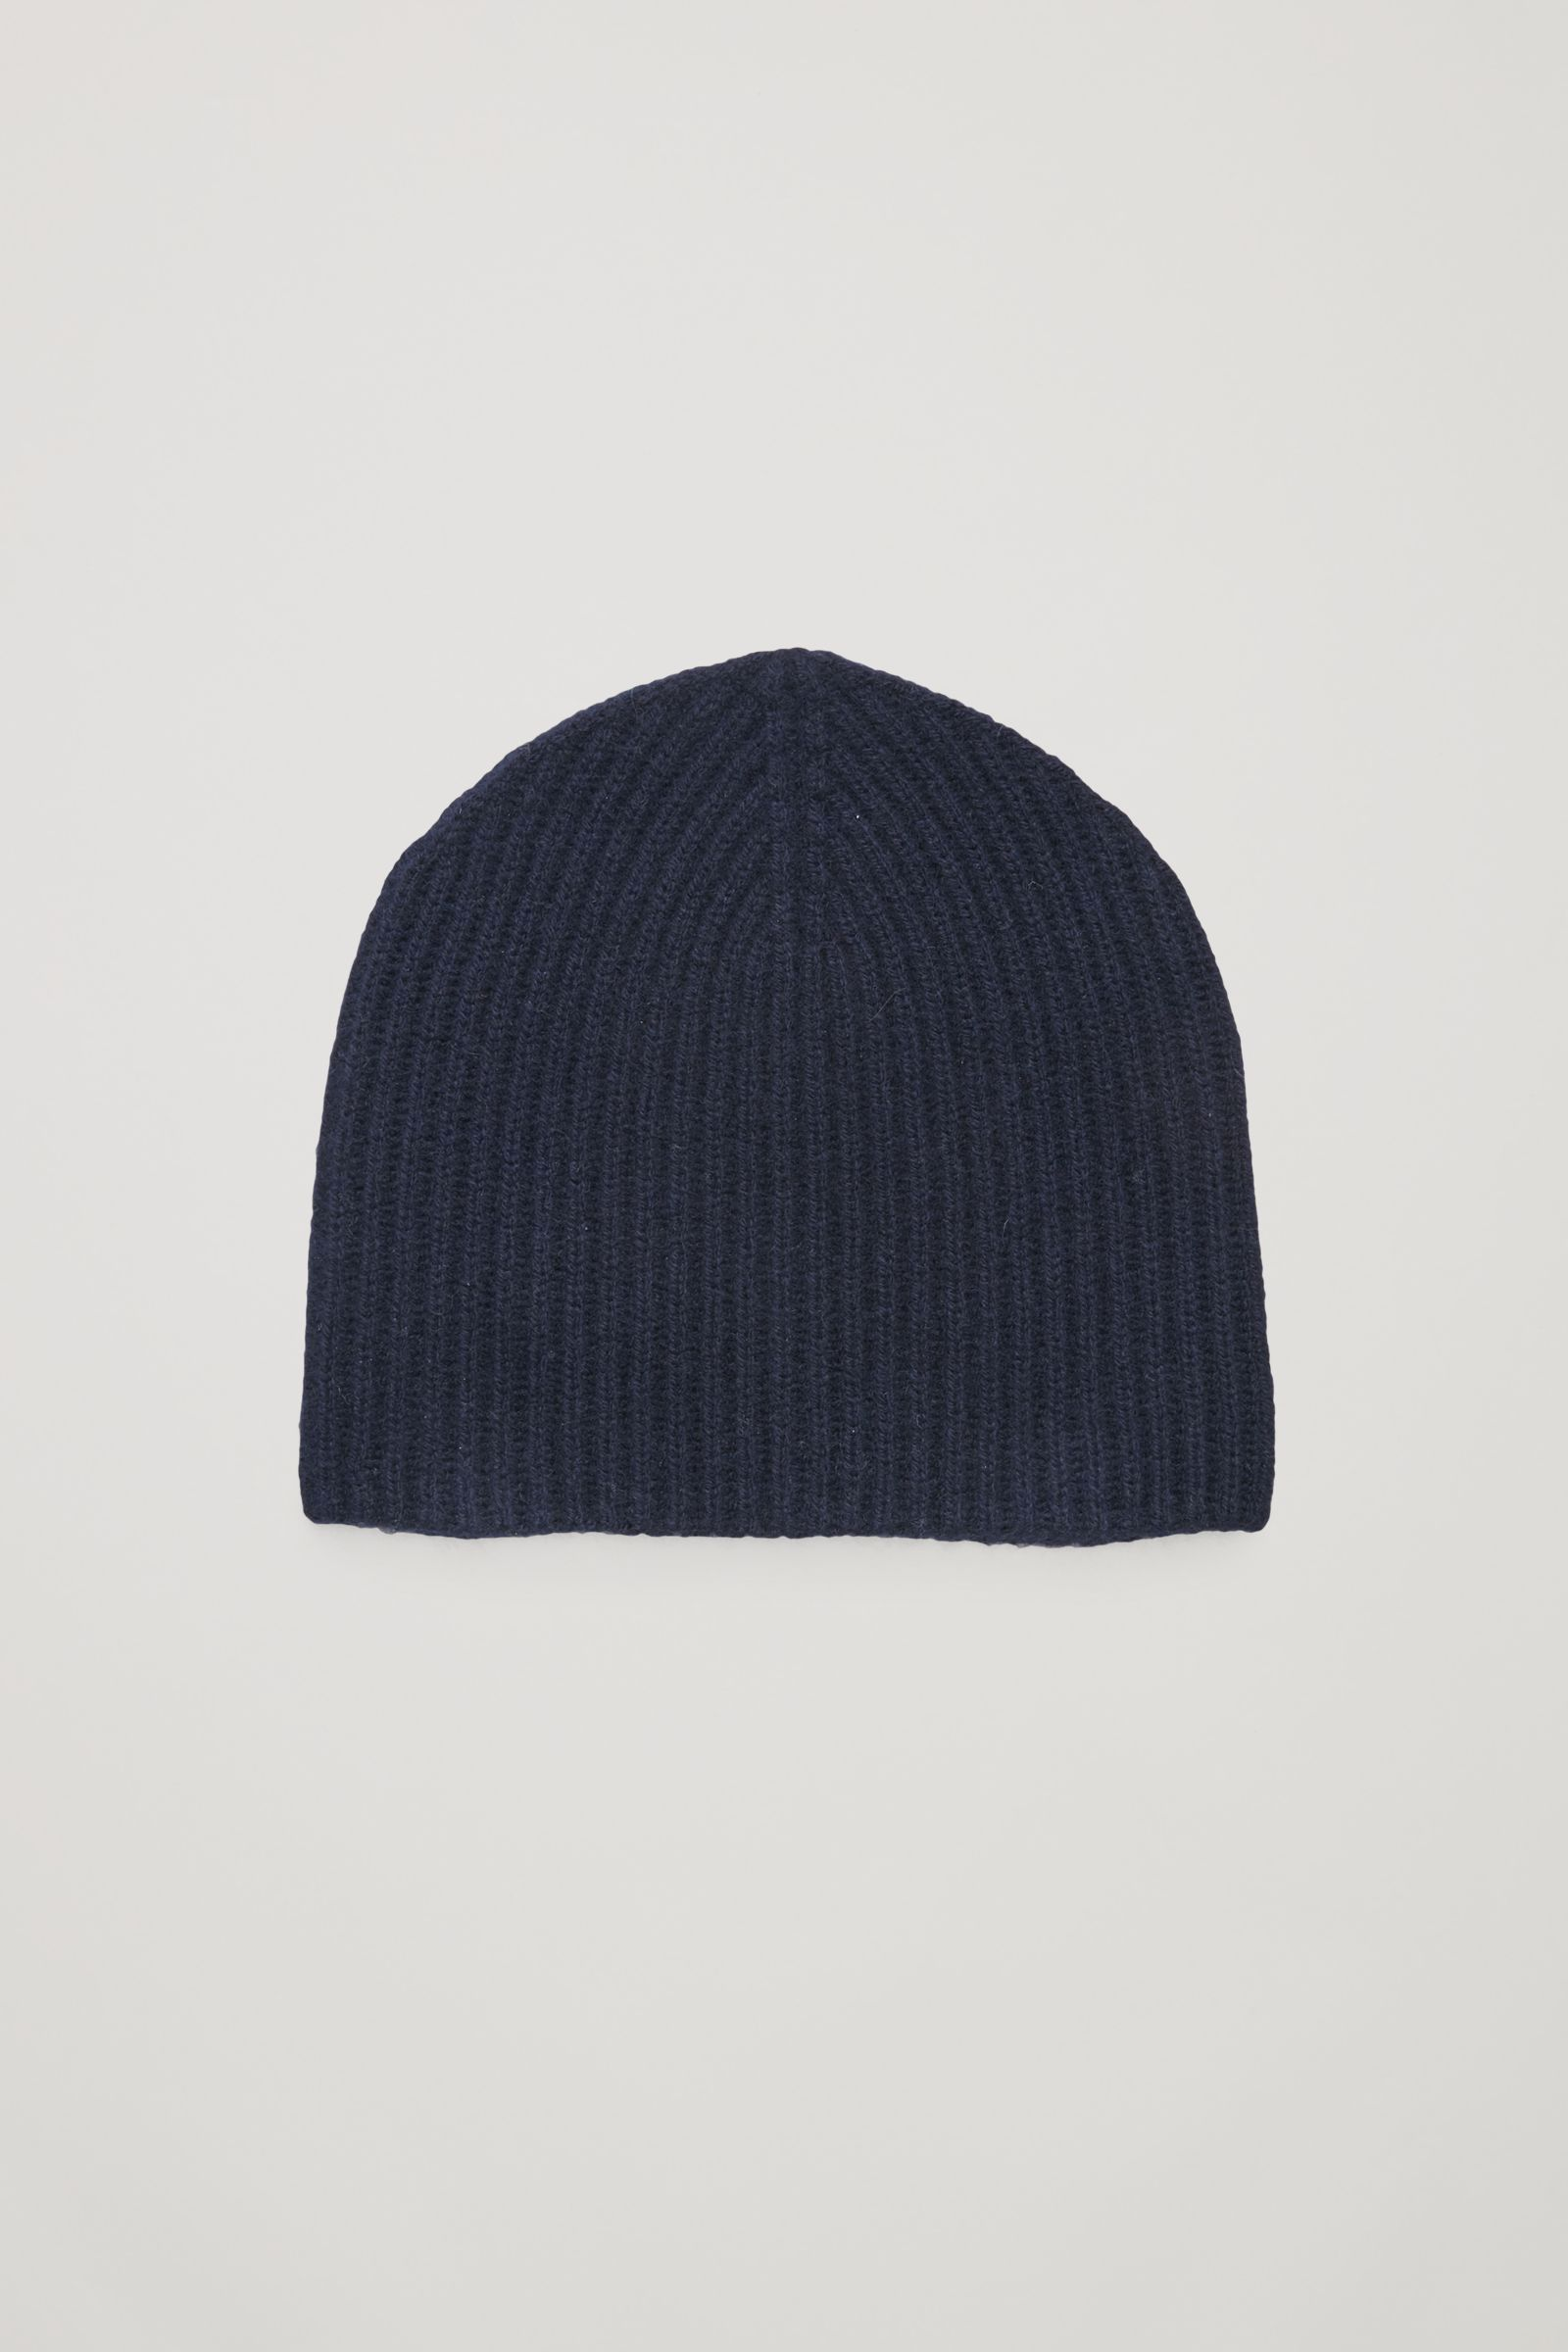 d81d6bd7ee0 COS image 14 of Ribbed cashmere hat in Navy